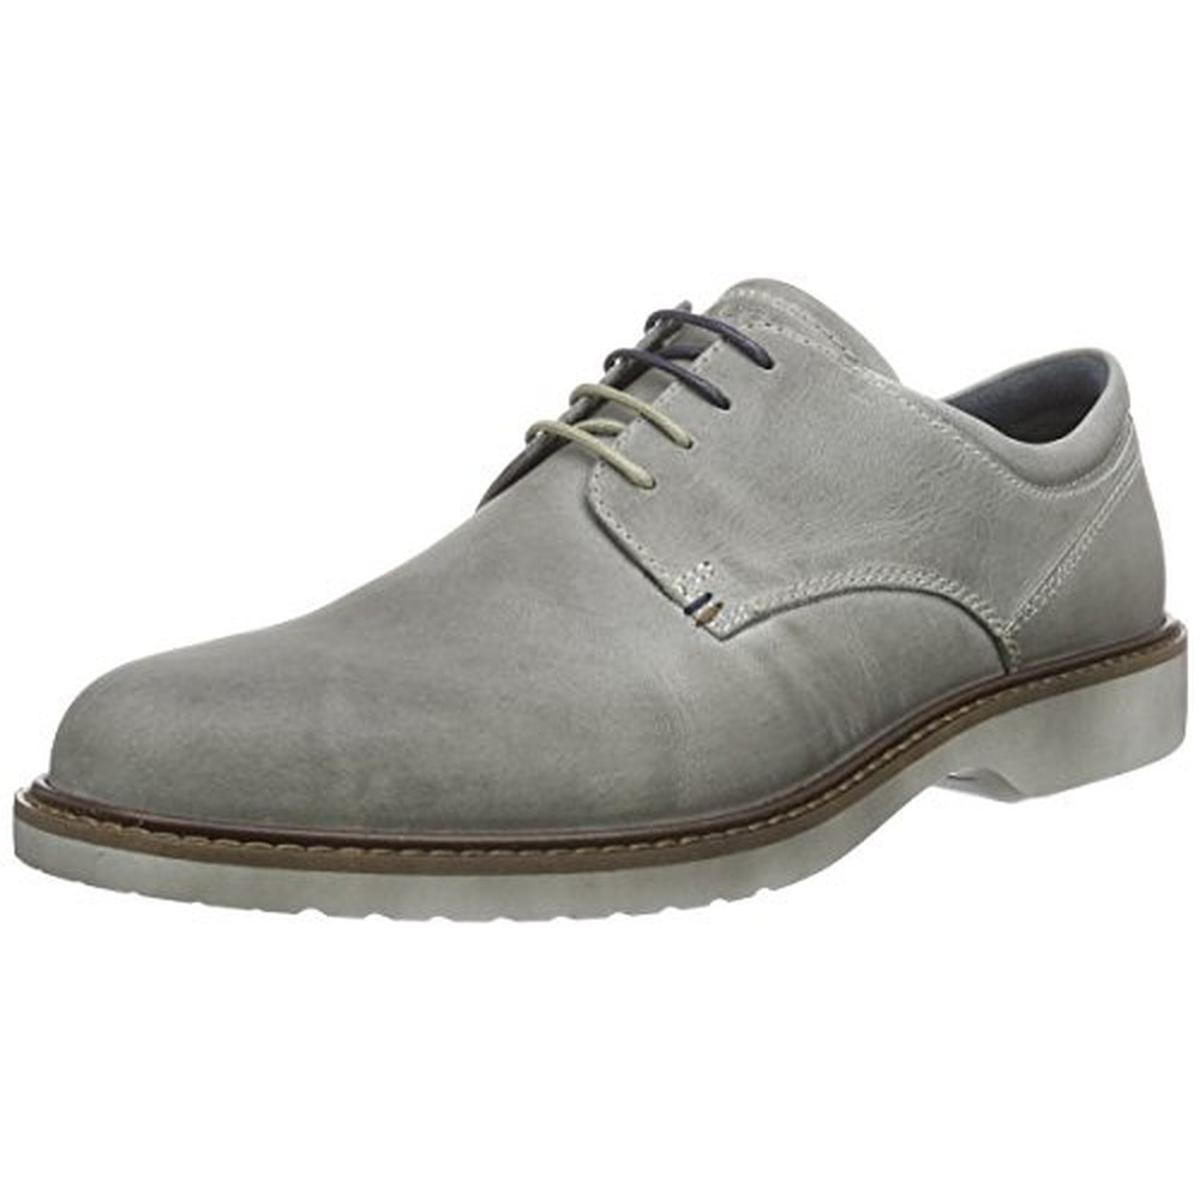 ECCO Mens Ian Leather Plain Toe Derby Shoes by Ecco